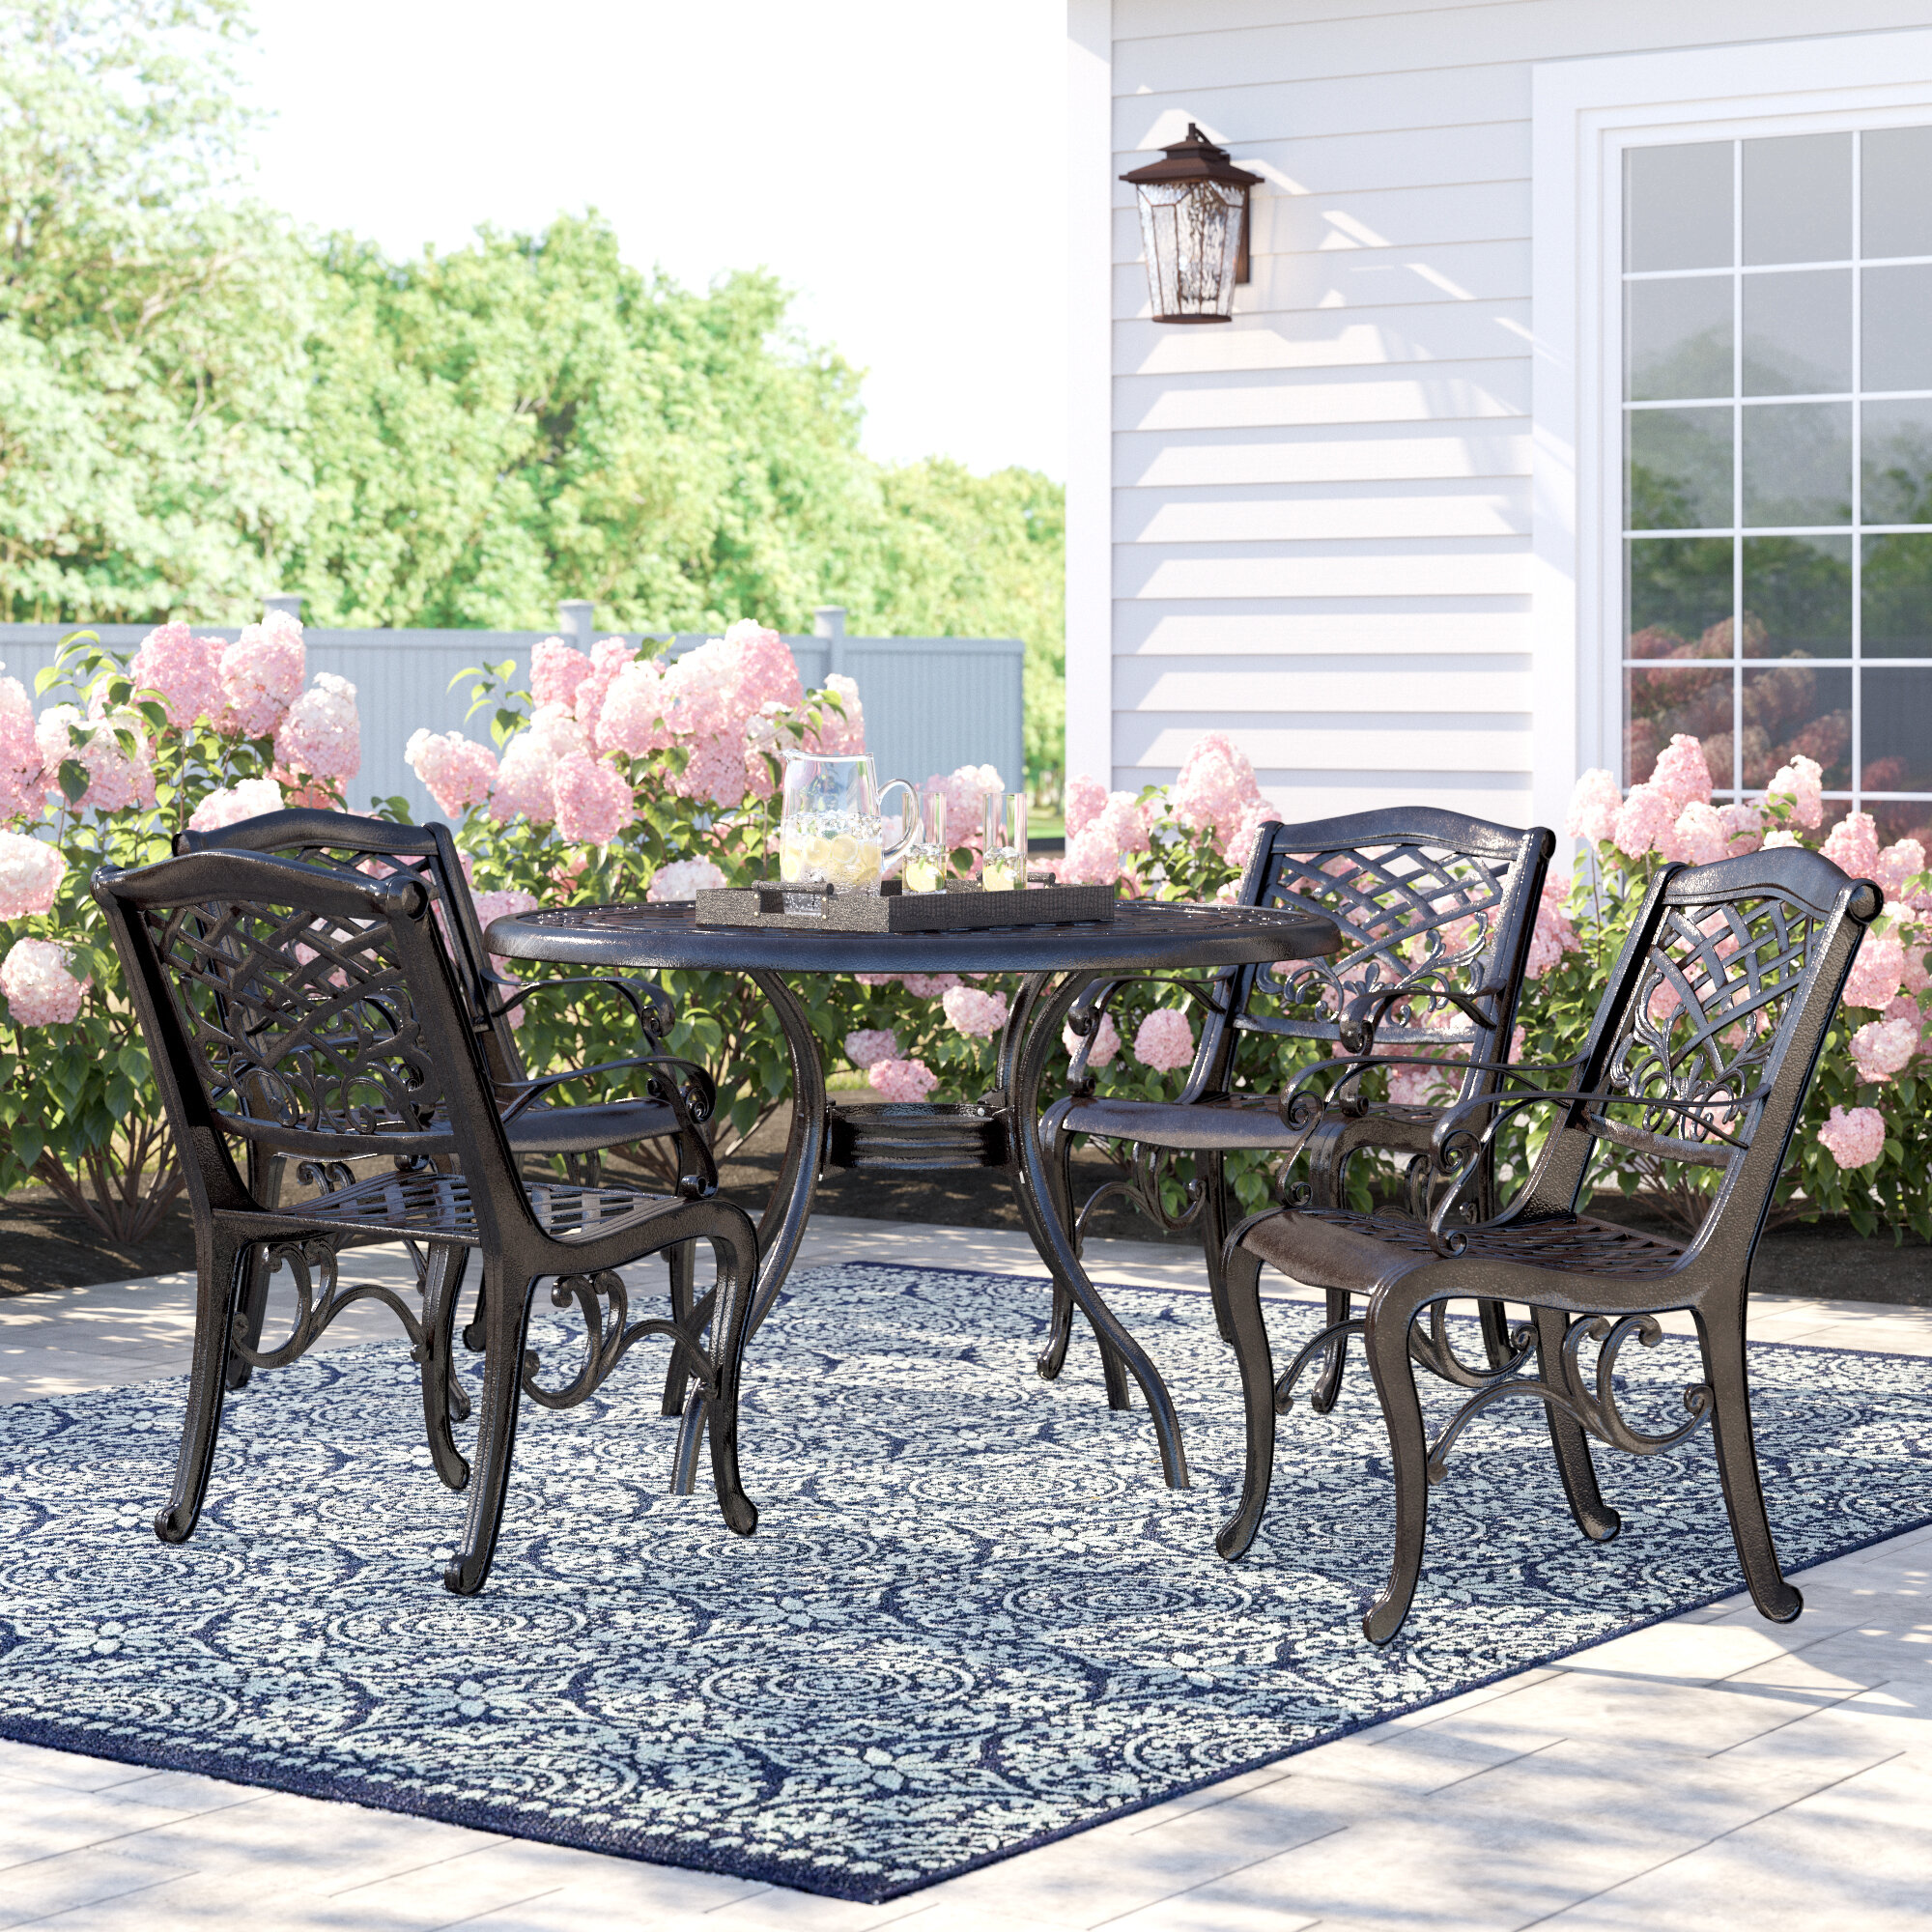 Four Person Patio Dining Sets You'll Love in 2020 | Wayfair